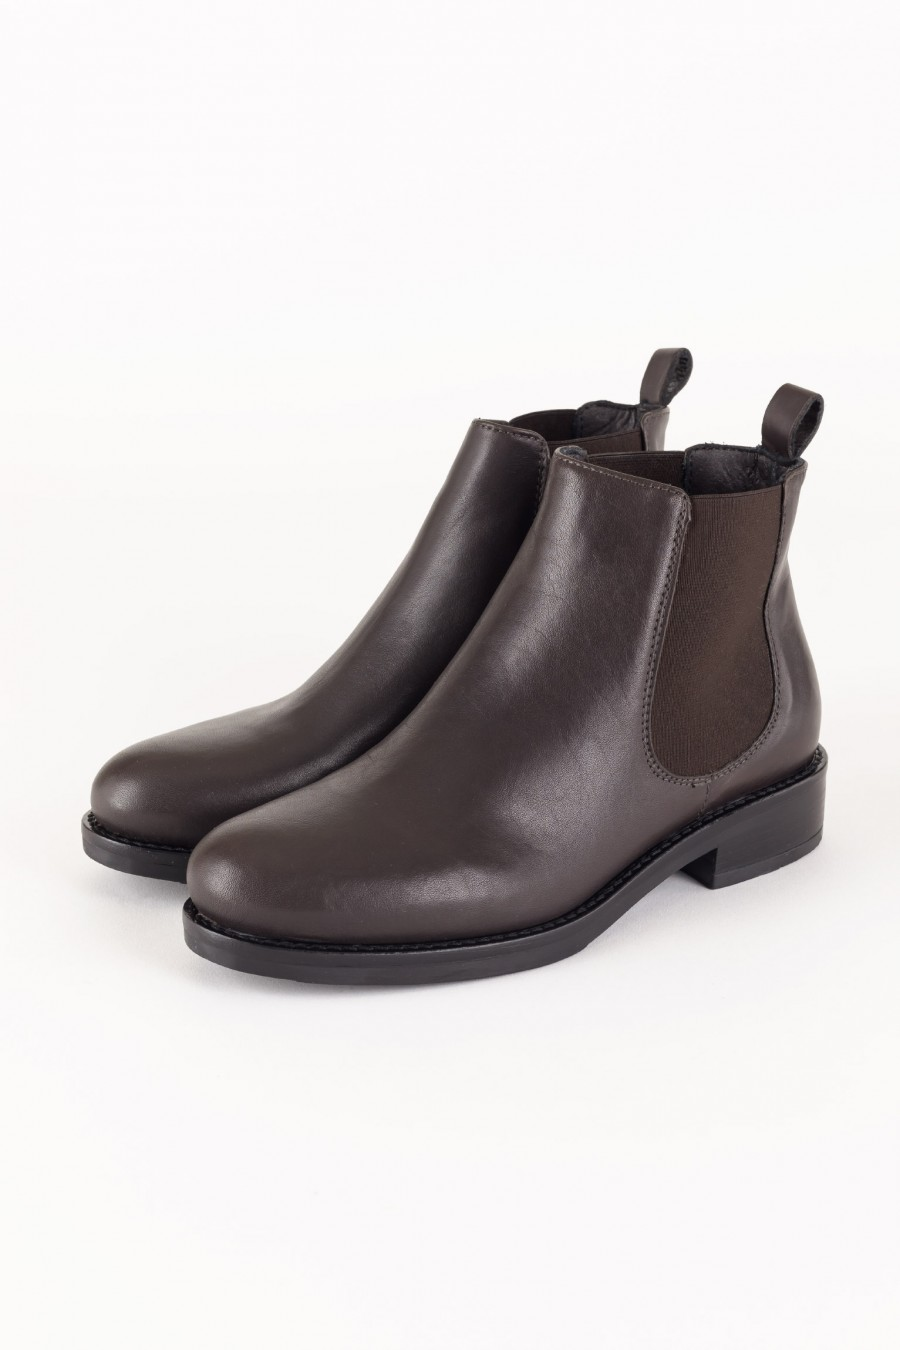 Sporty brown boots